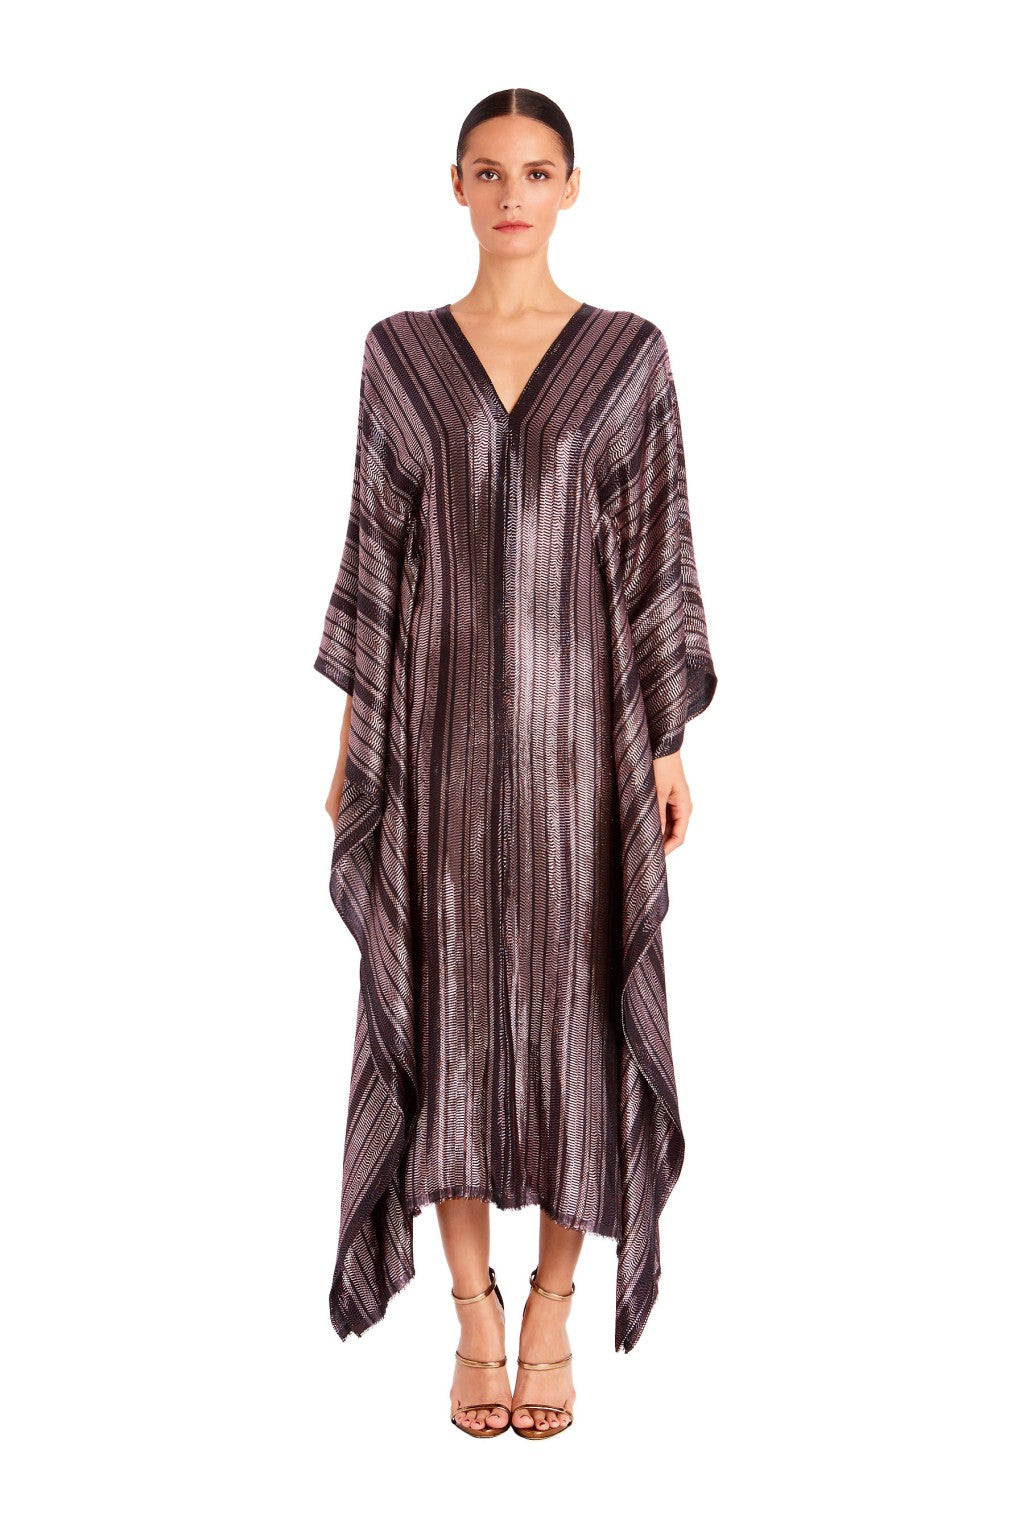 The Estelle Kaftan